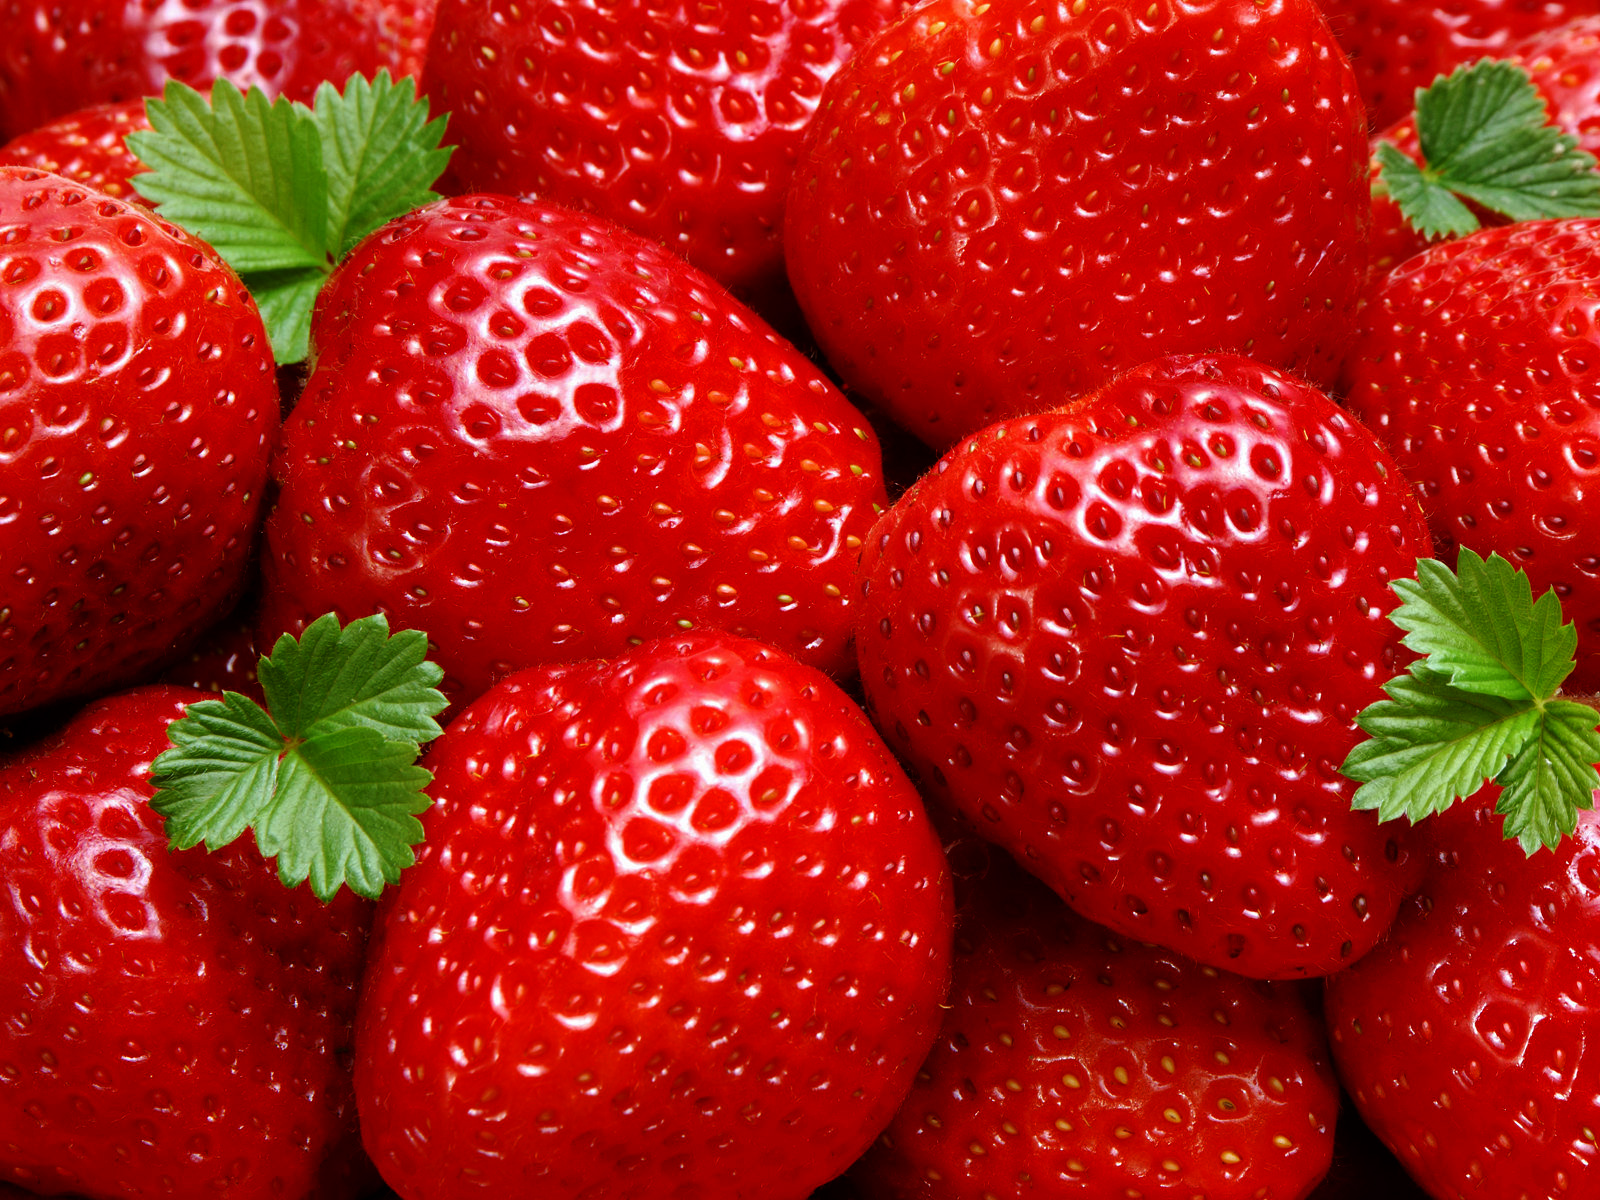 Fresh Strawberries Photography HD Wallpapers Desktop Wallpaper 1600x1200